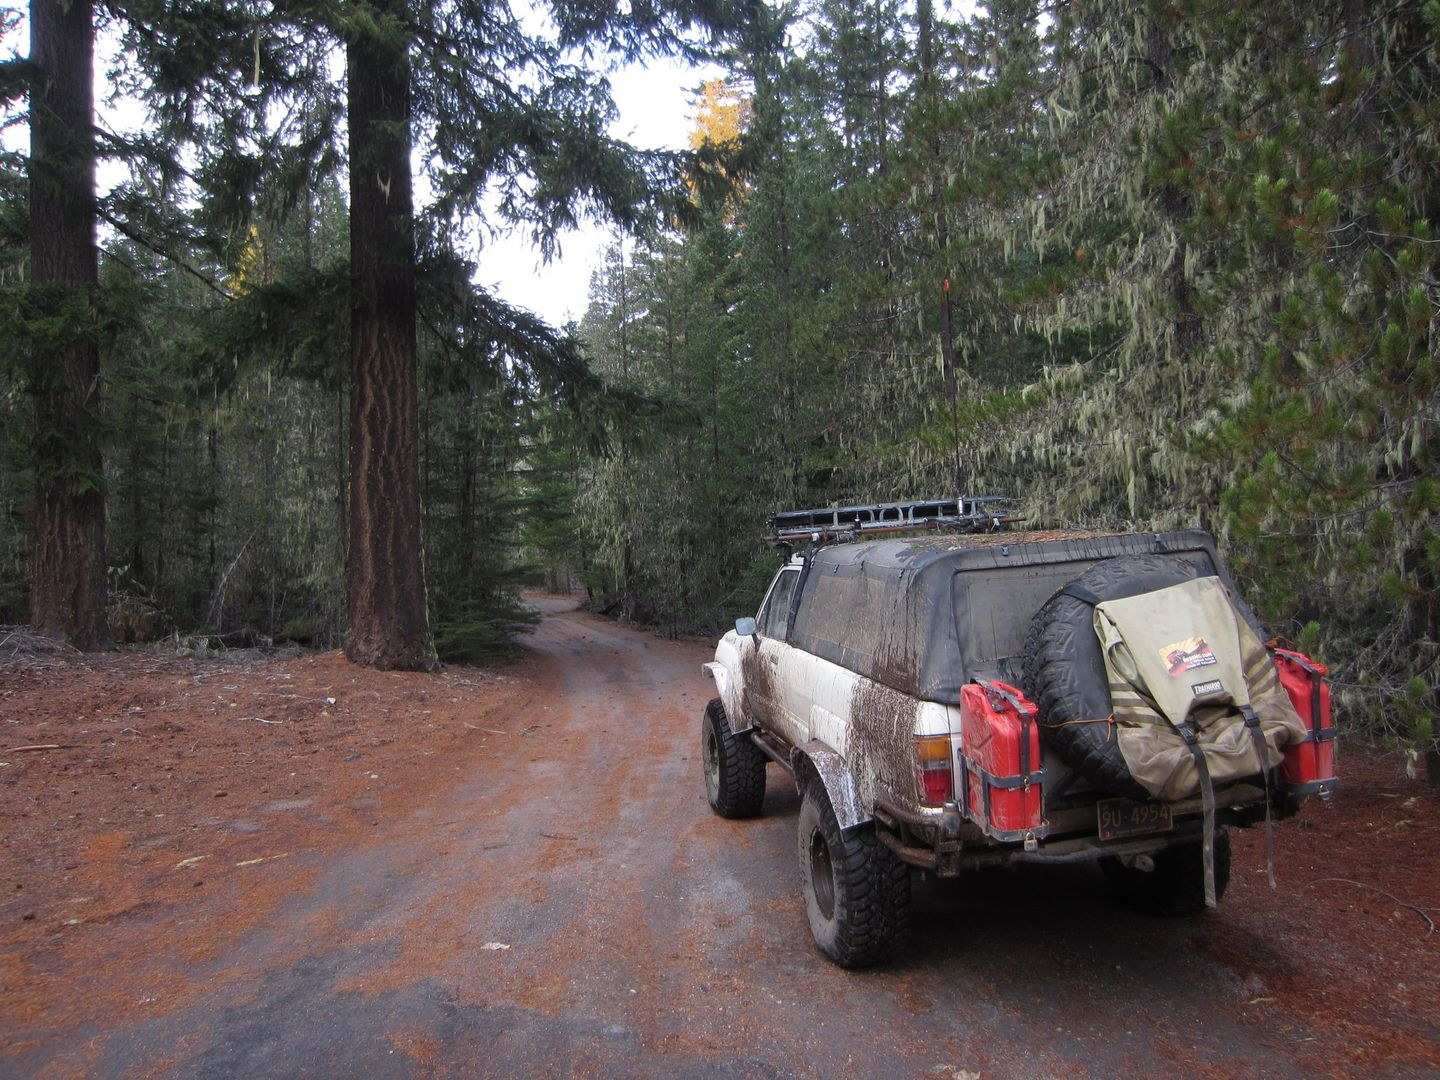 Barlow Trail - Waypoint 31: Continue Straight Across Cedar Butte Road (NF-43)